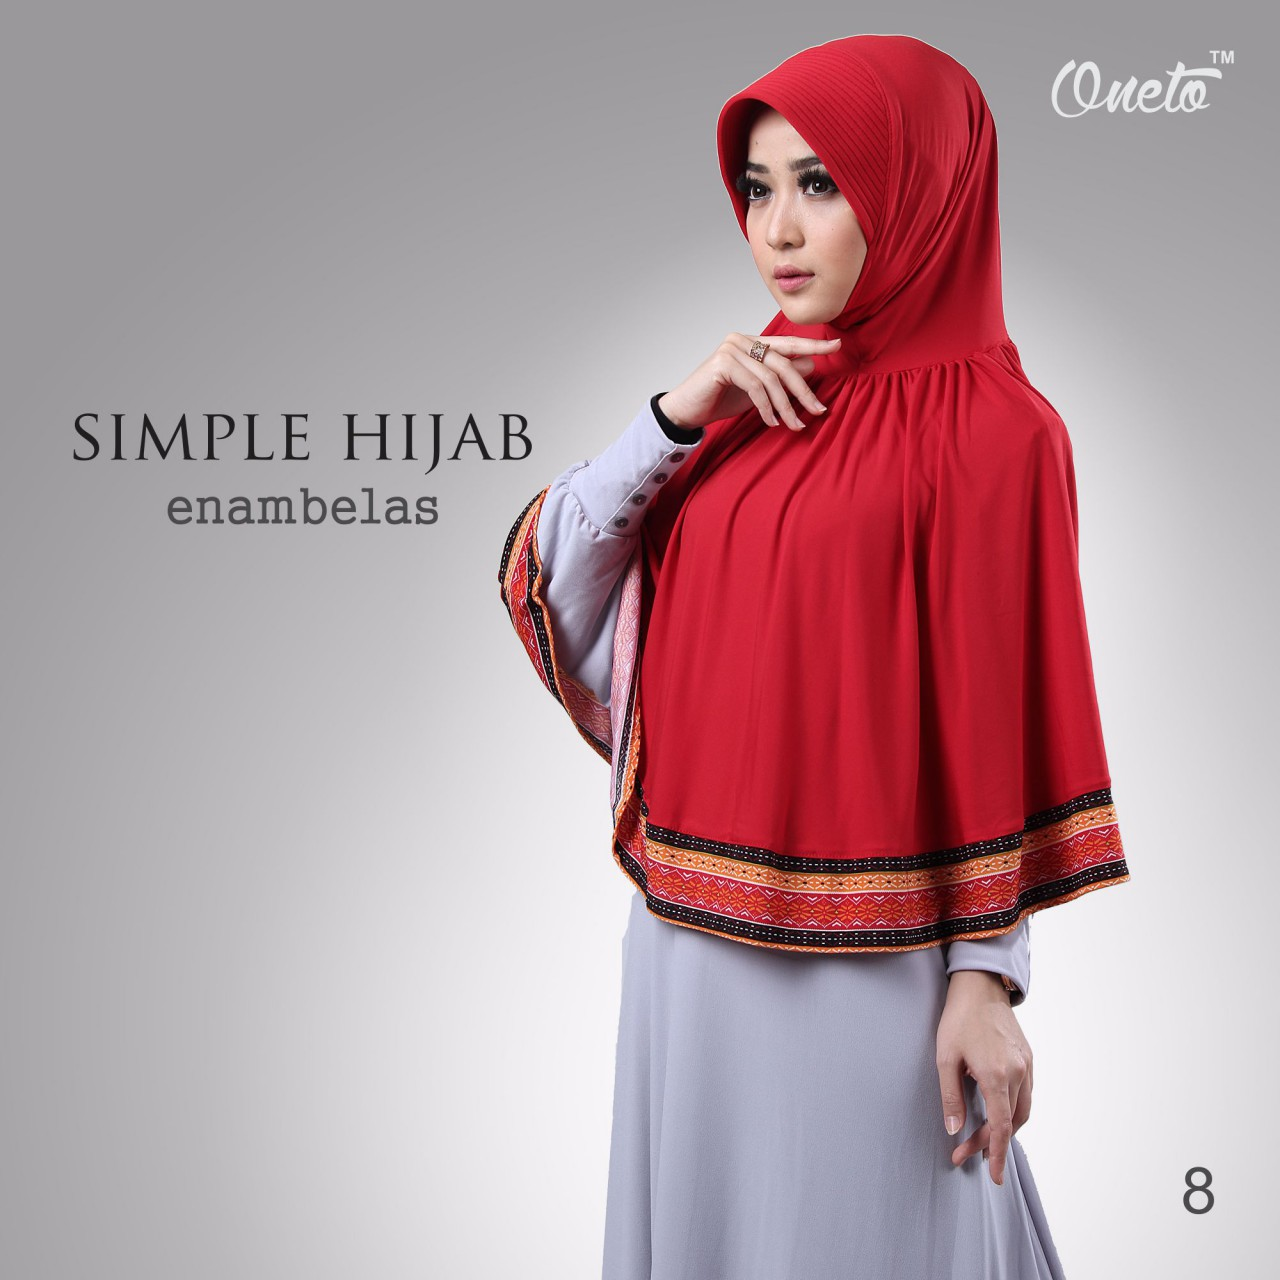 oneto simple hijab 16 merah.